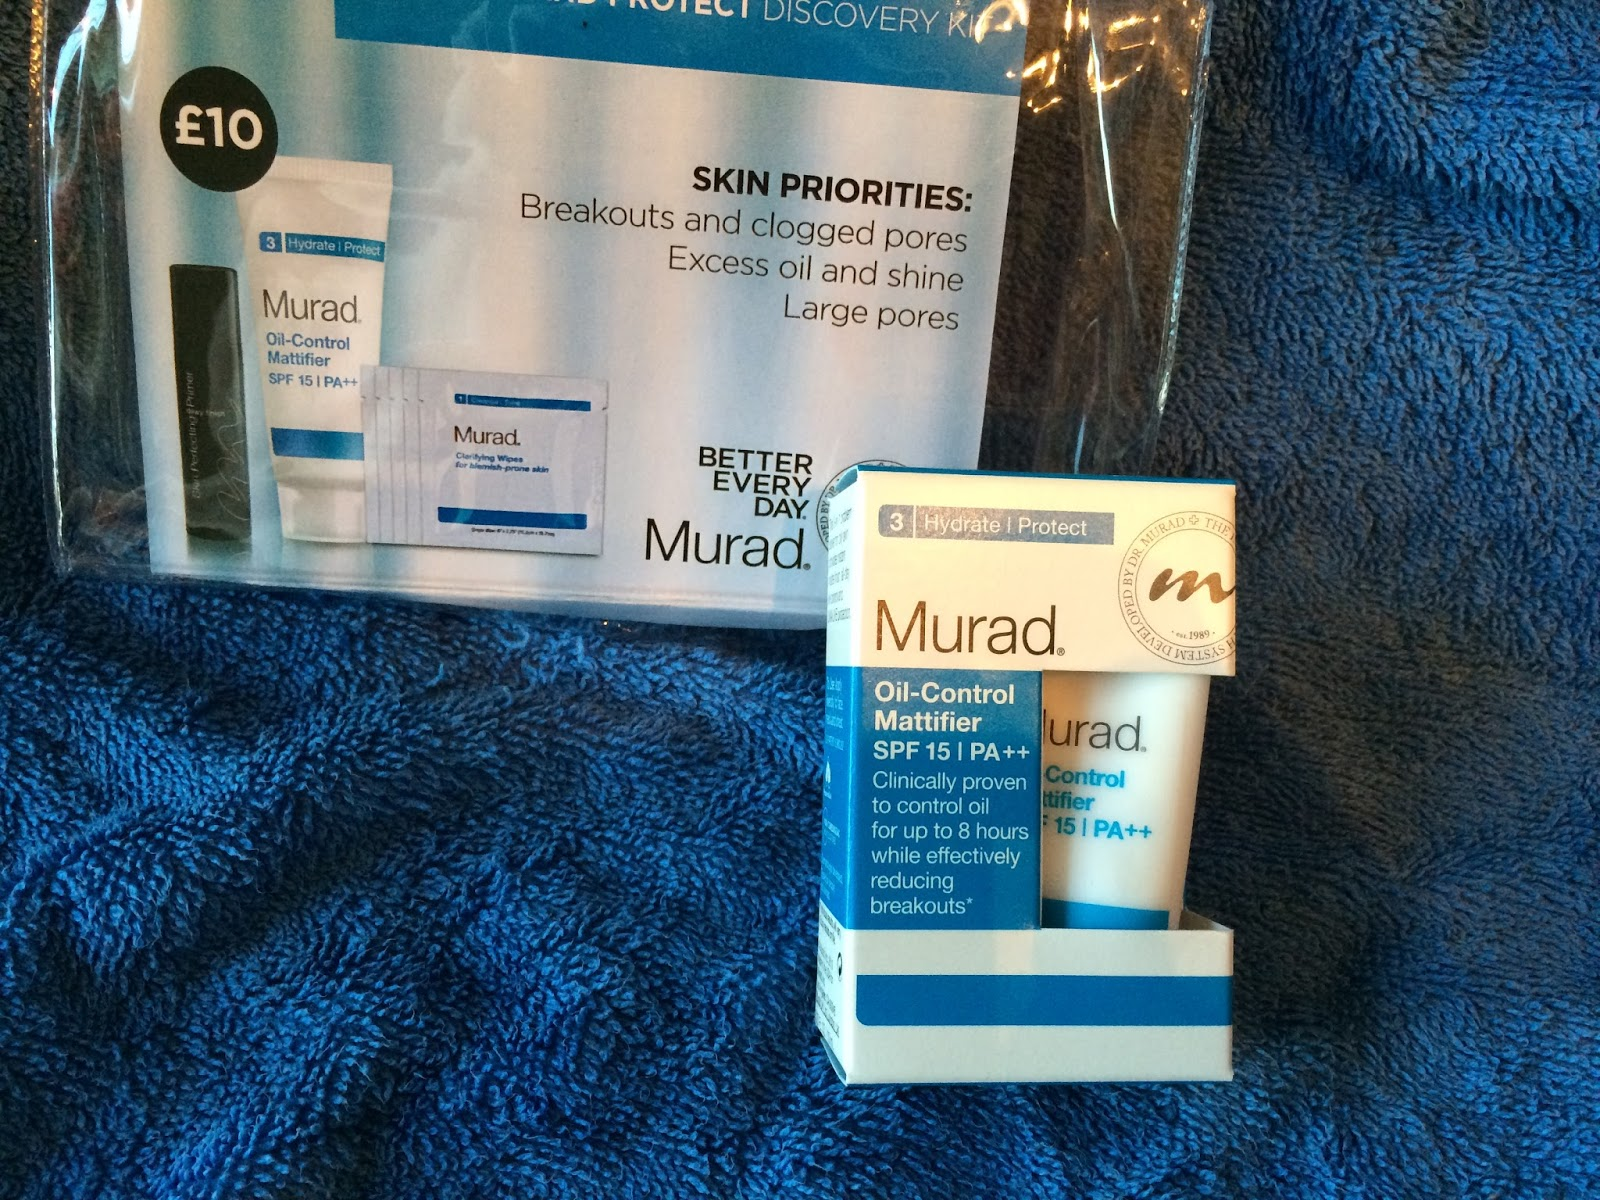 Murad Balance and Protect Travel Kit